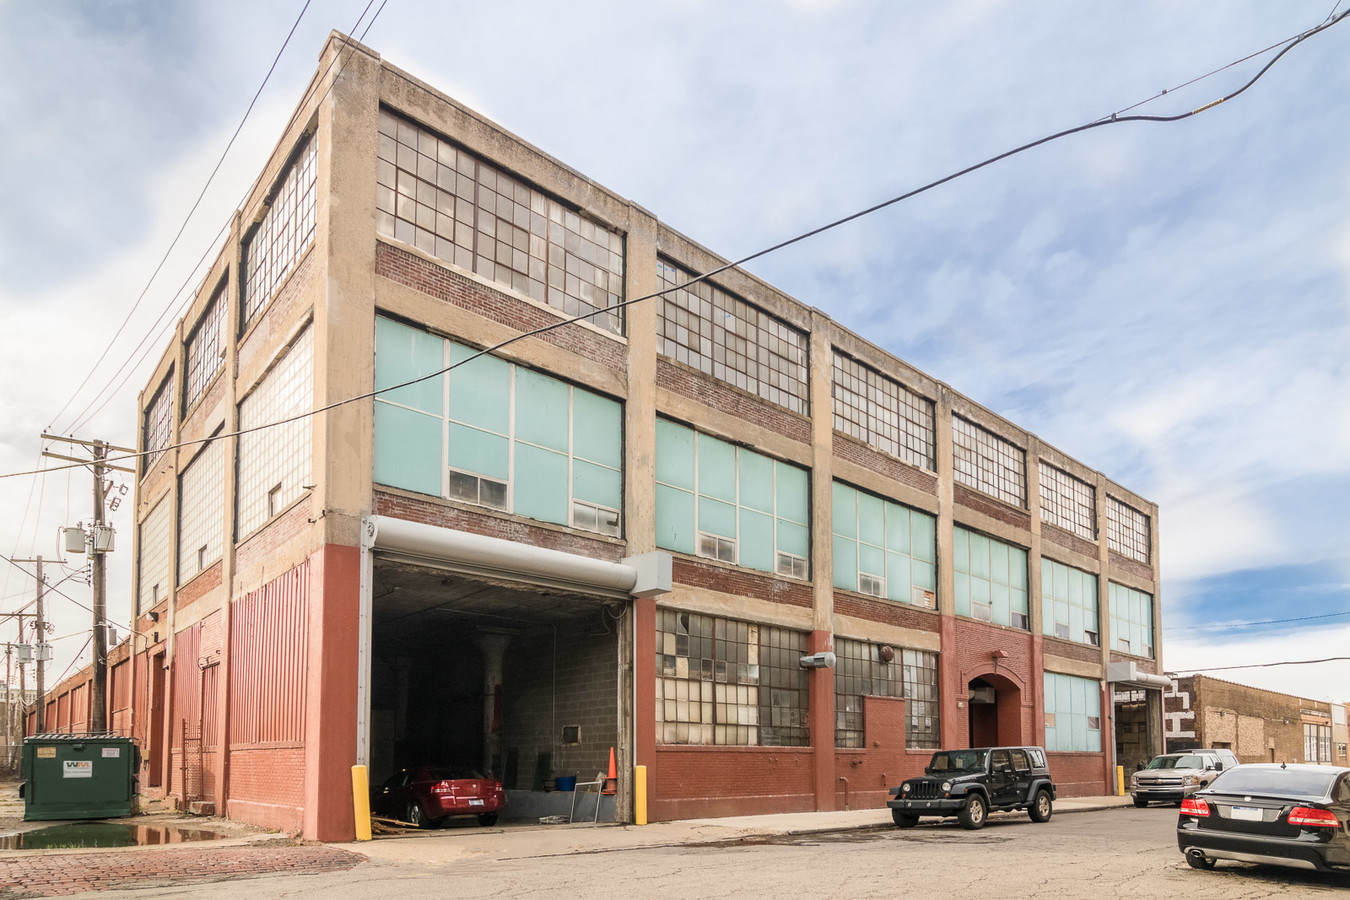 Warehouse For Sale Detroit 6545 Saint Antoine St Detroit Mi 48202 Warehouse Property For